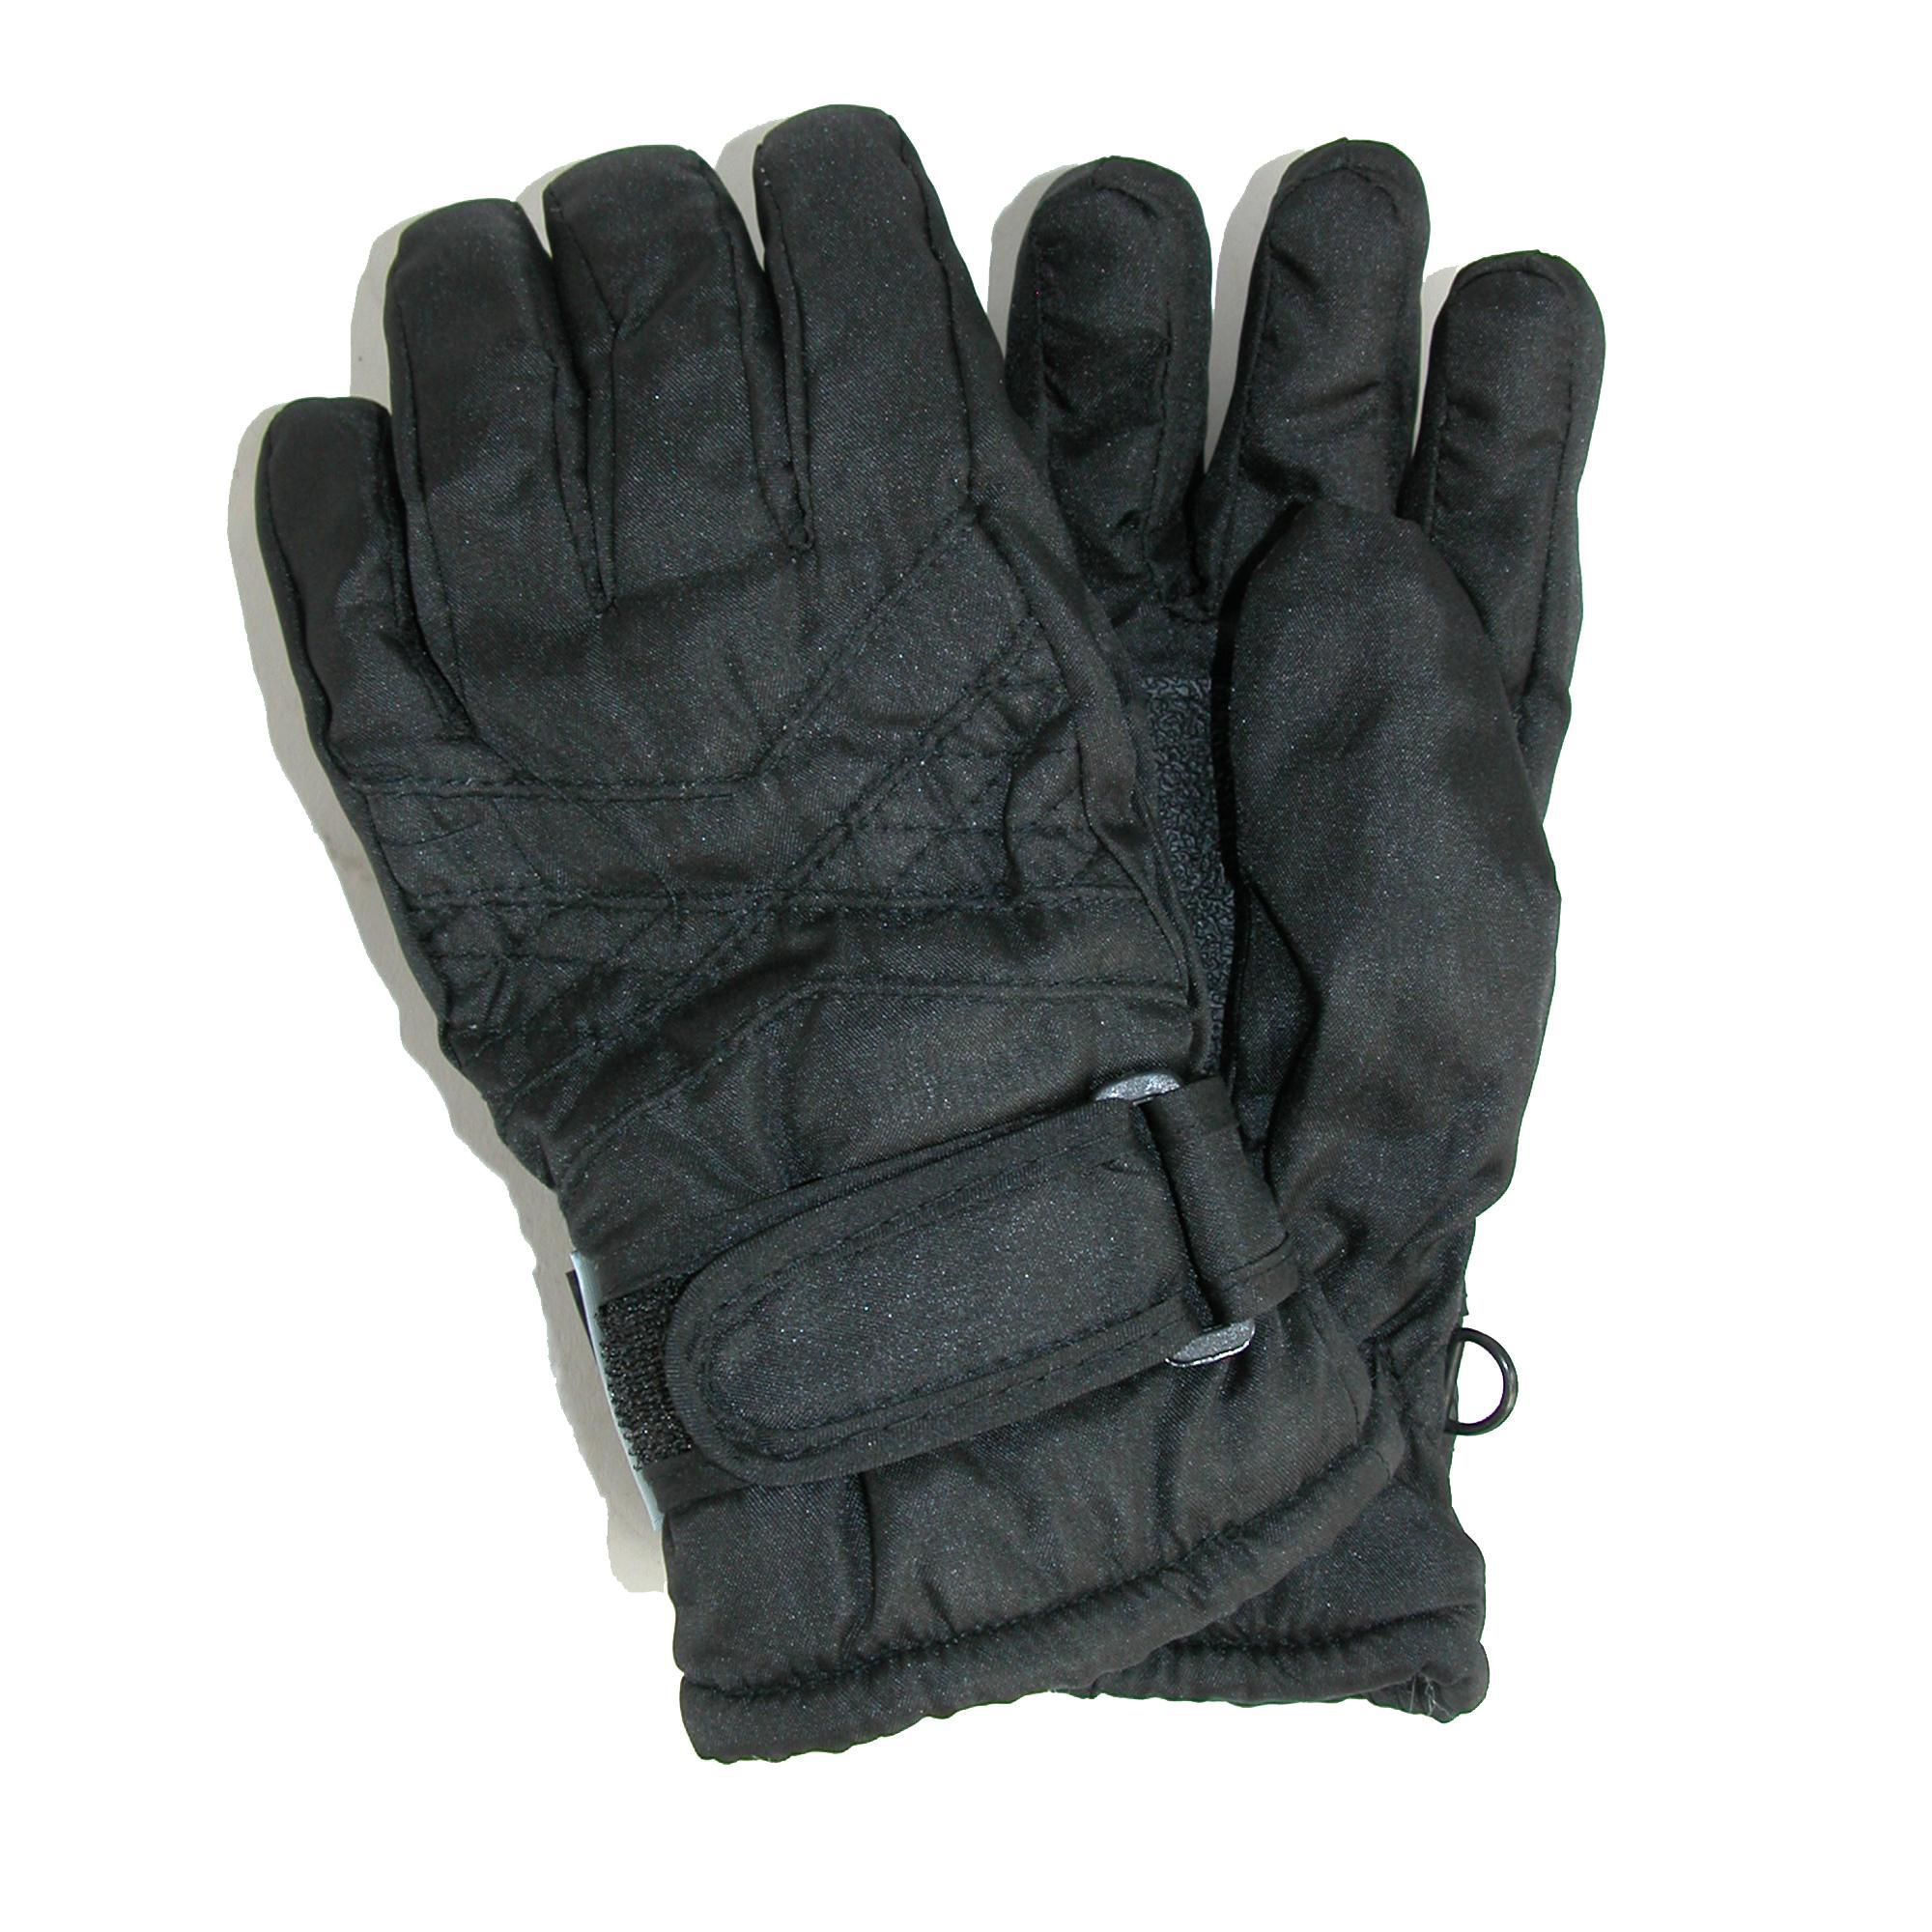 New CTM Toddlers Thinsulate Lined Water Resistant Winter